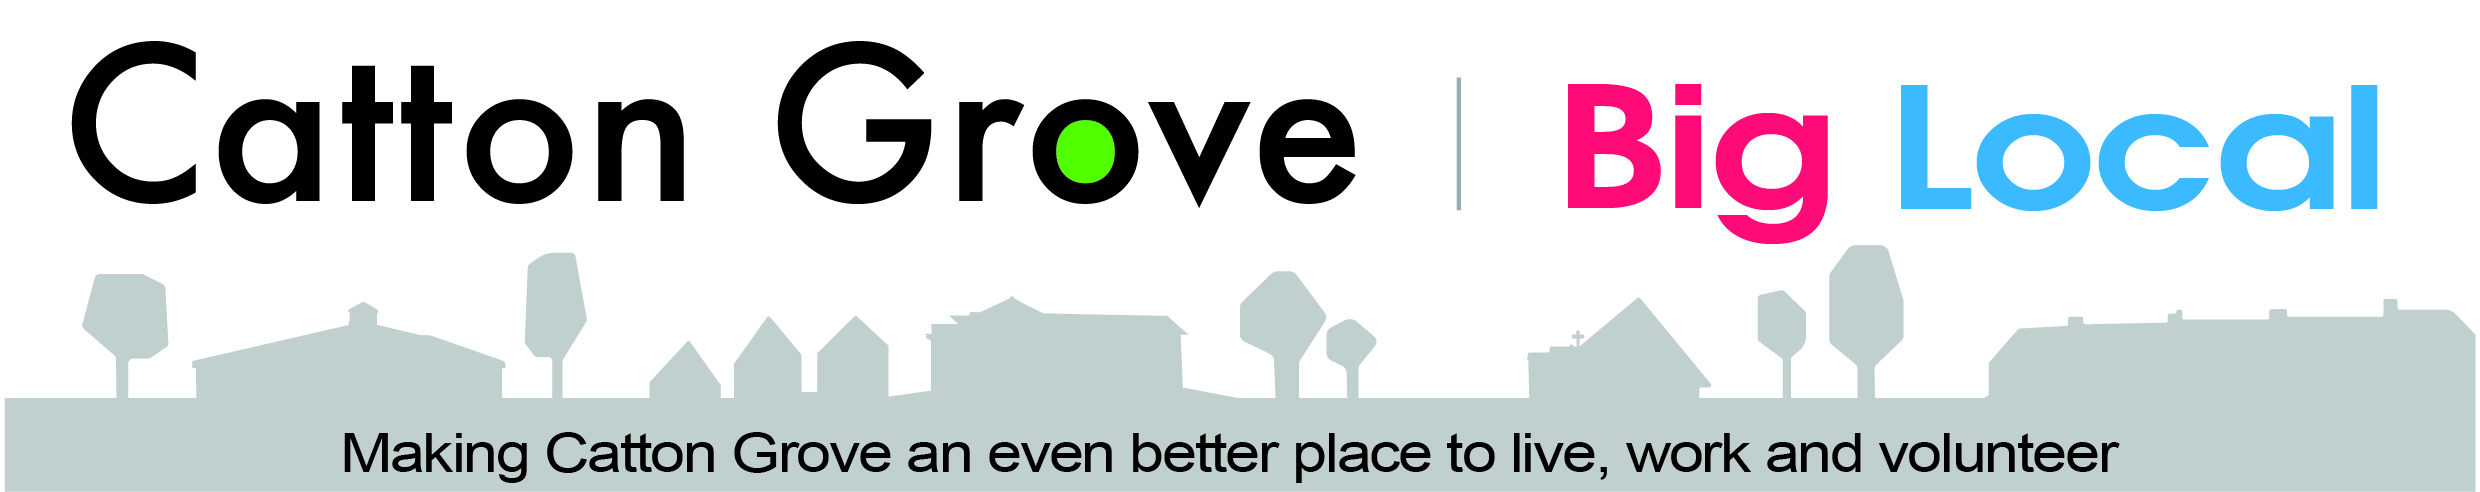 Catton Grove Big Local